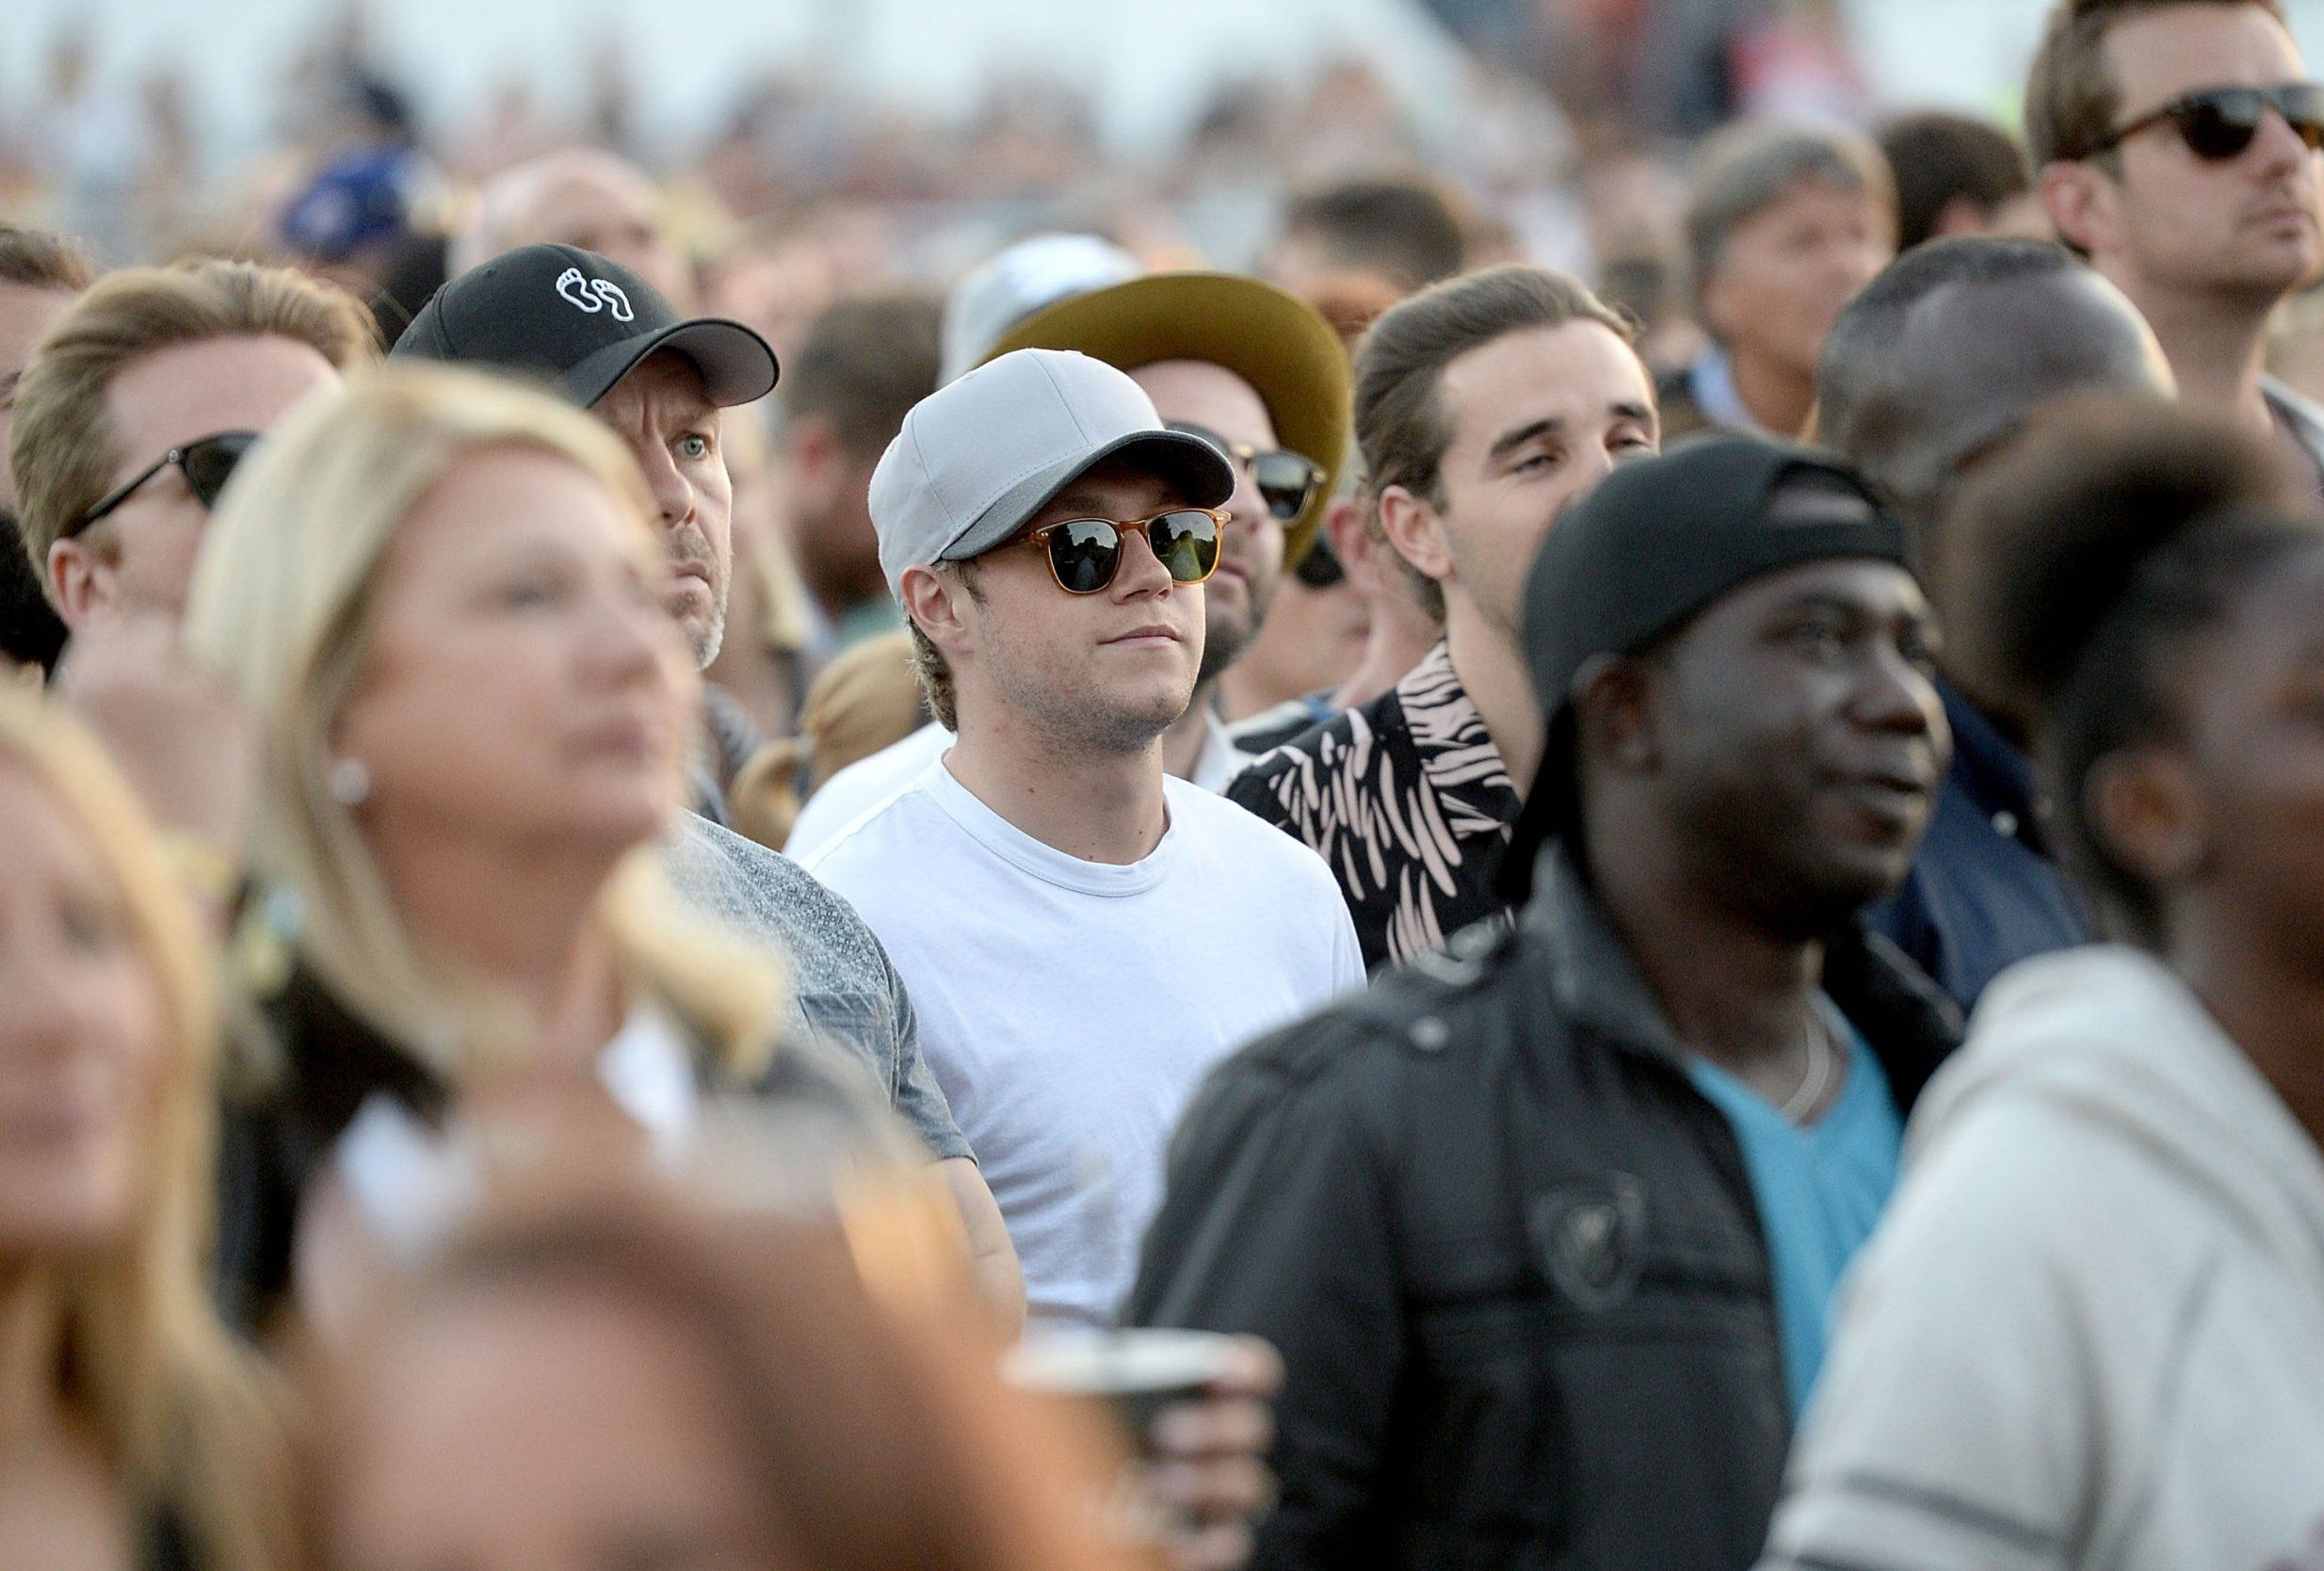 LONDON, ENGLAND - JULY 08: Niall Horan watches Mumford and Sons perform on stage at the Barclaycard Presents British Summer Time Festival in Hyde Park on July 8, 2016 in London, England. (Photo by Dave J Hogan/Dave Hogan/Getty Images )